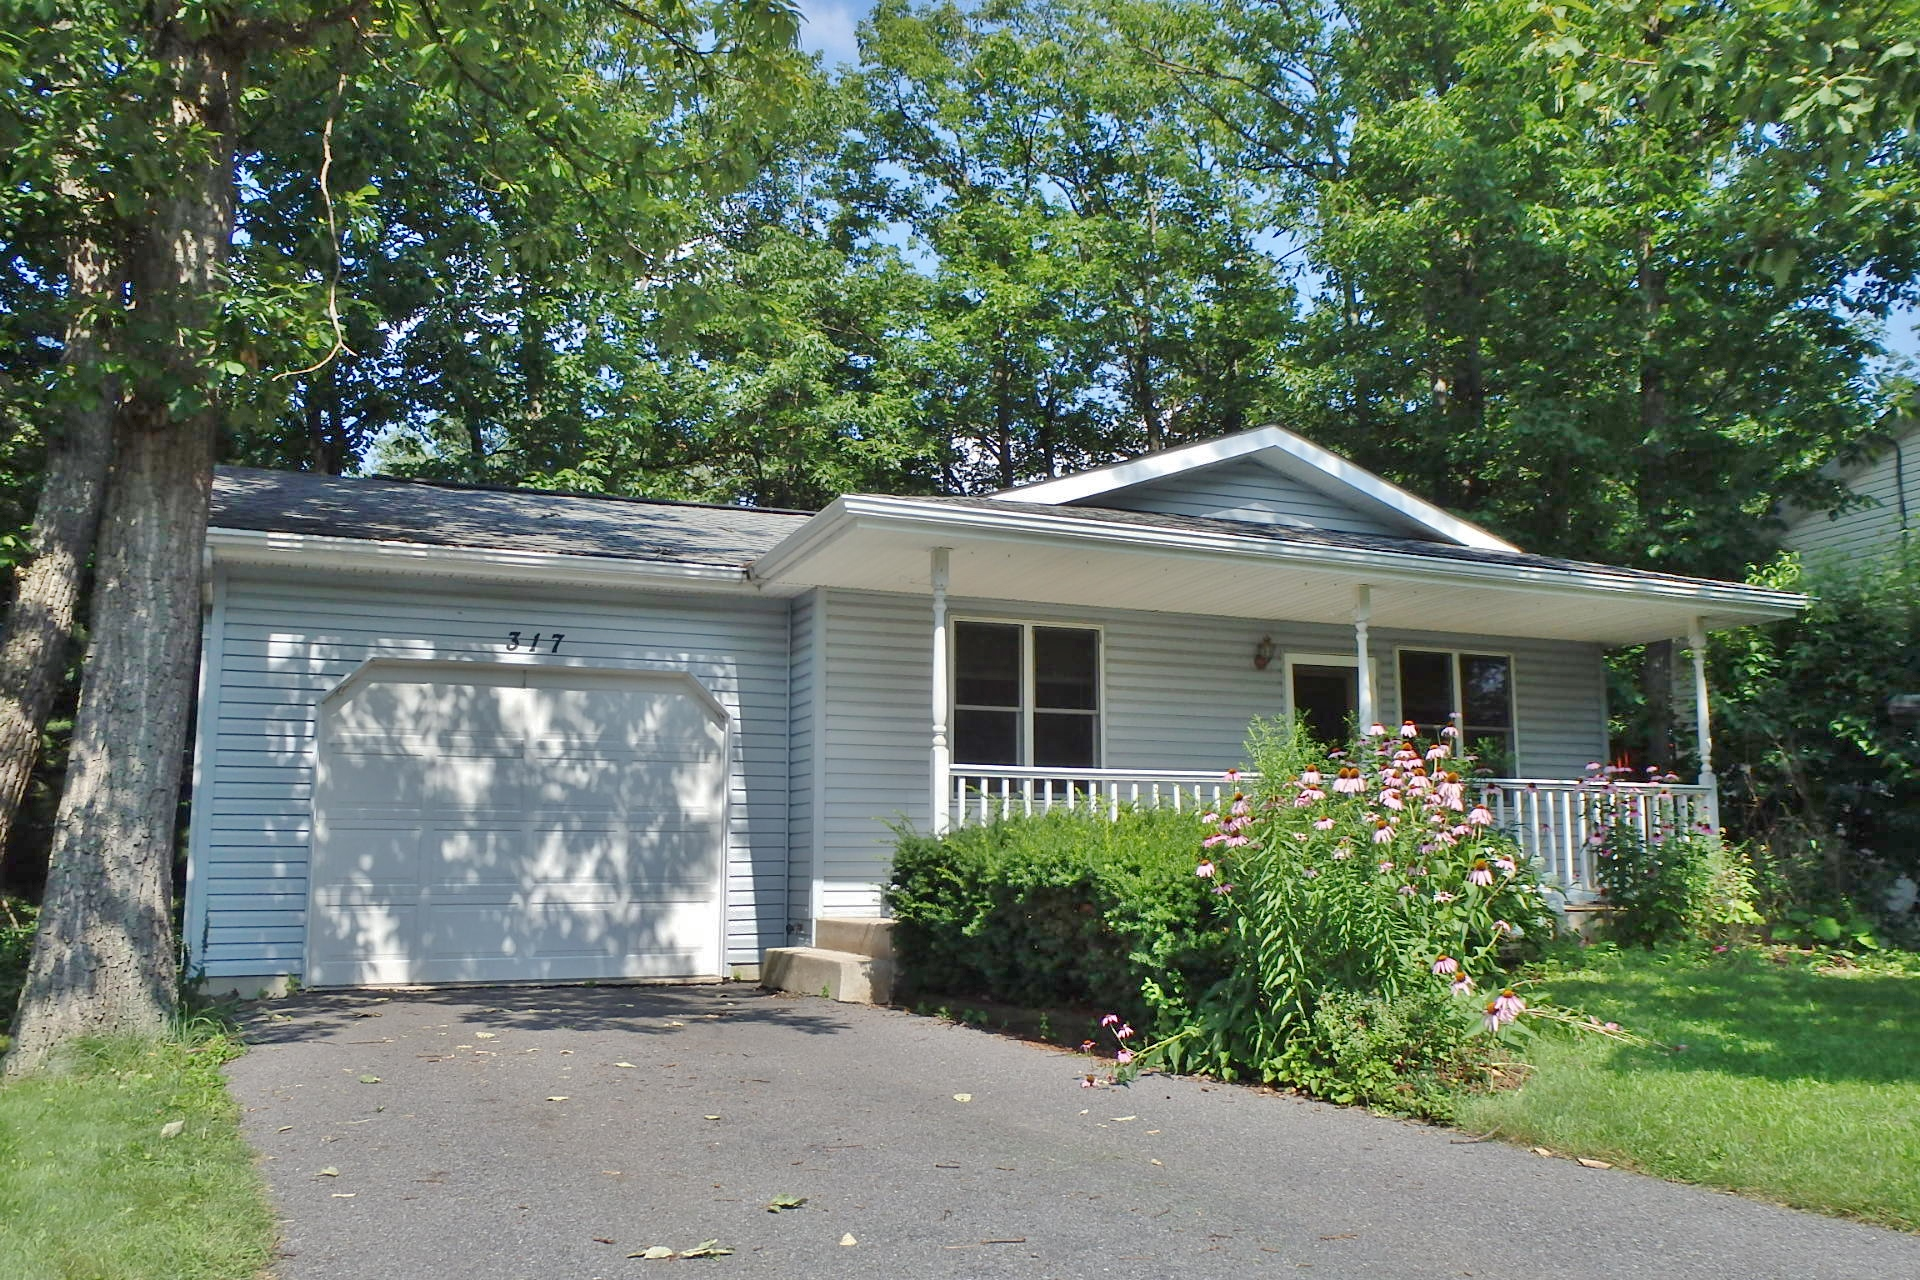 Rent 317 ghaner drive 3 bedroom house in state college - 3 bedroom apartments state college pa ...